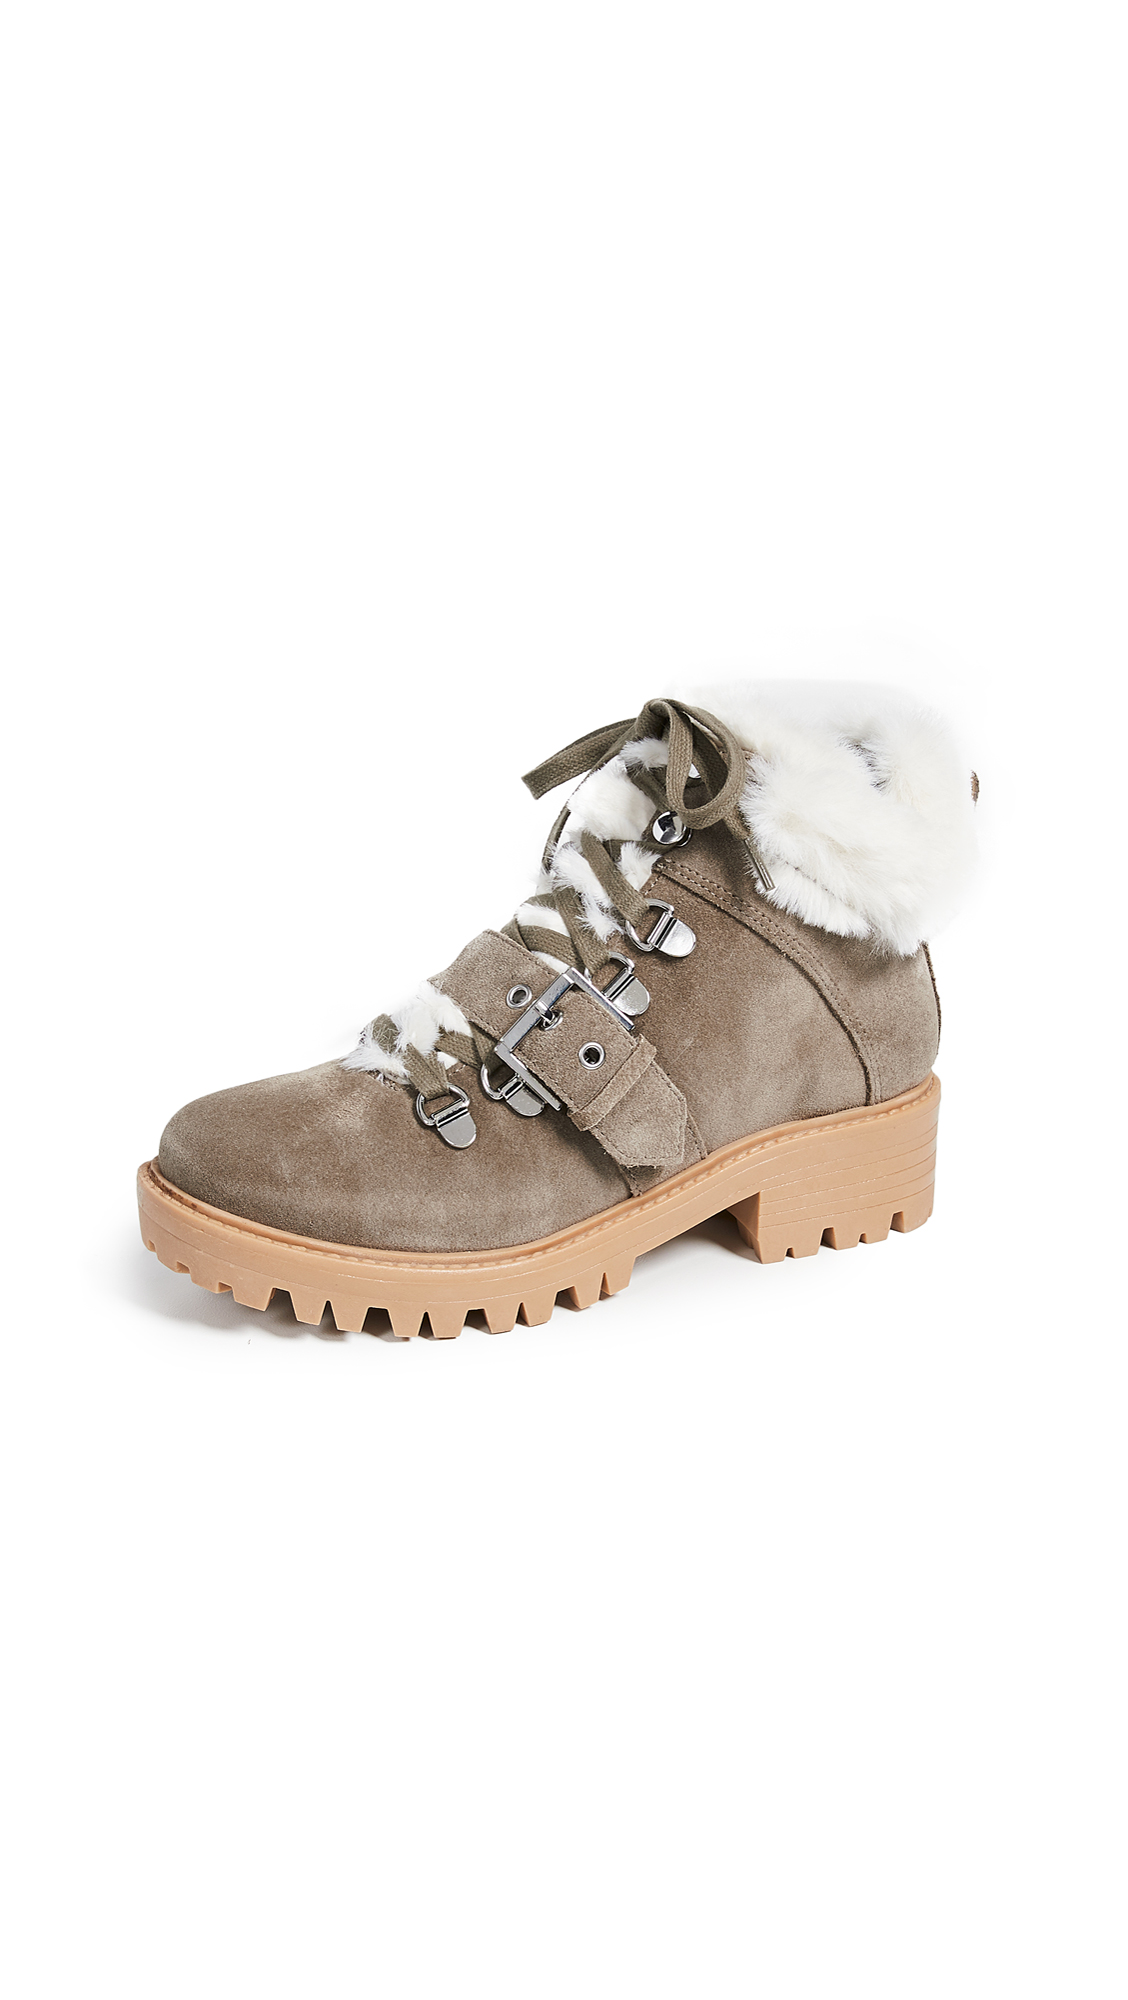 KENDALL + KYLIE Edison Combat Boots - Natural Multi